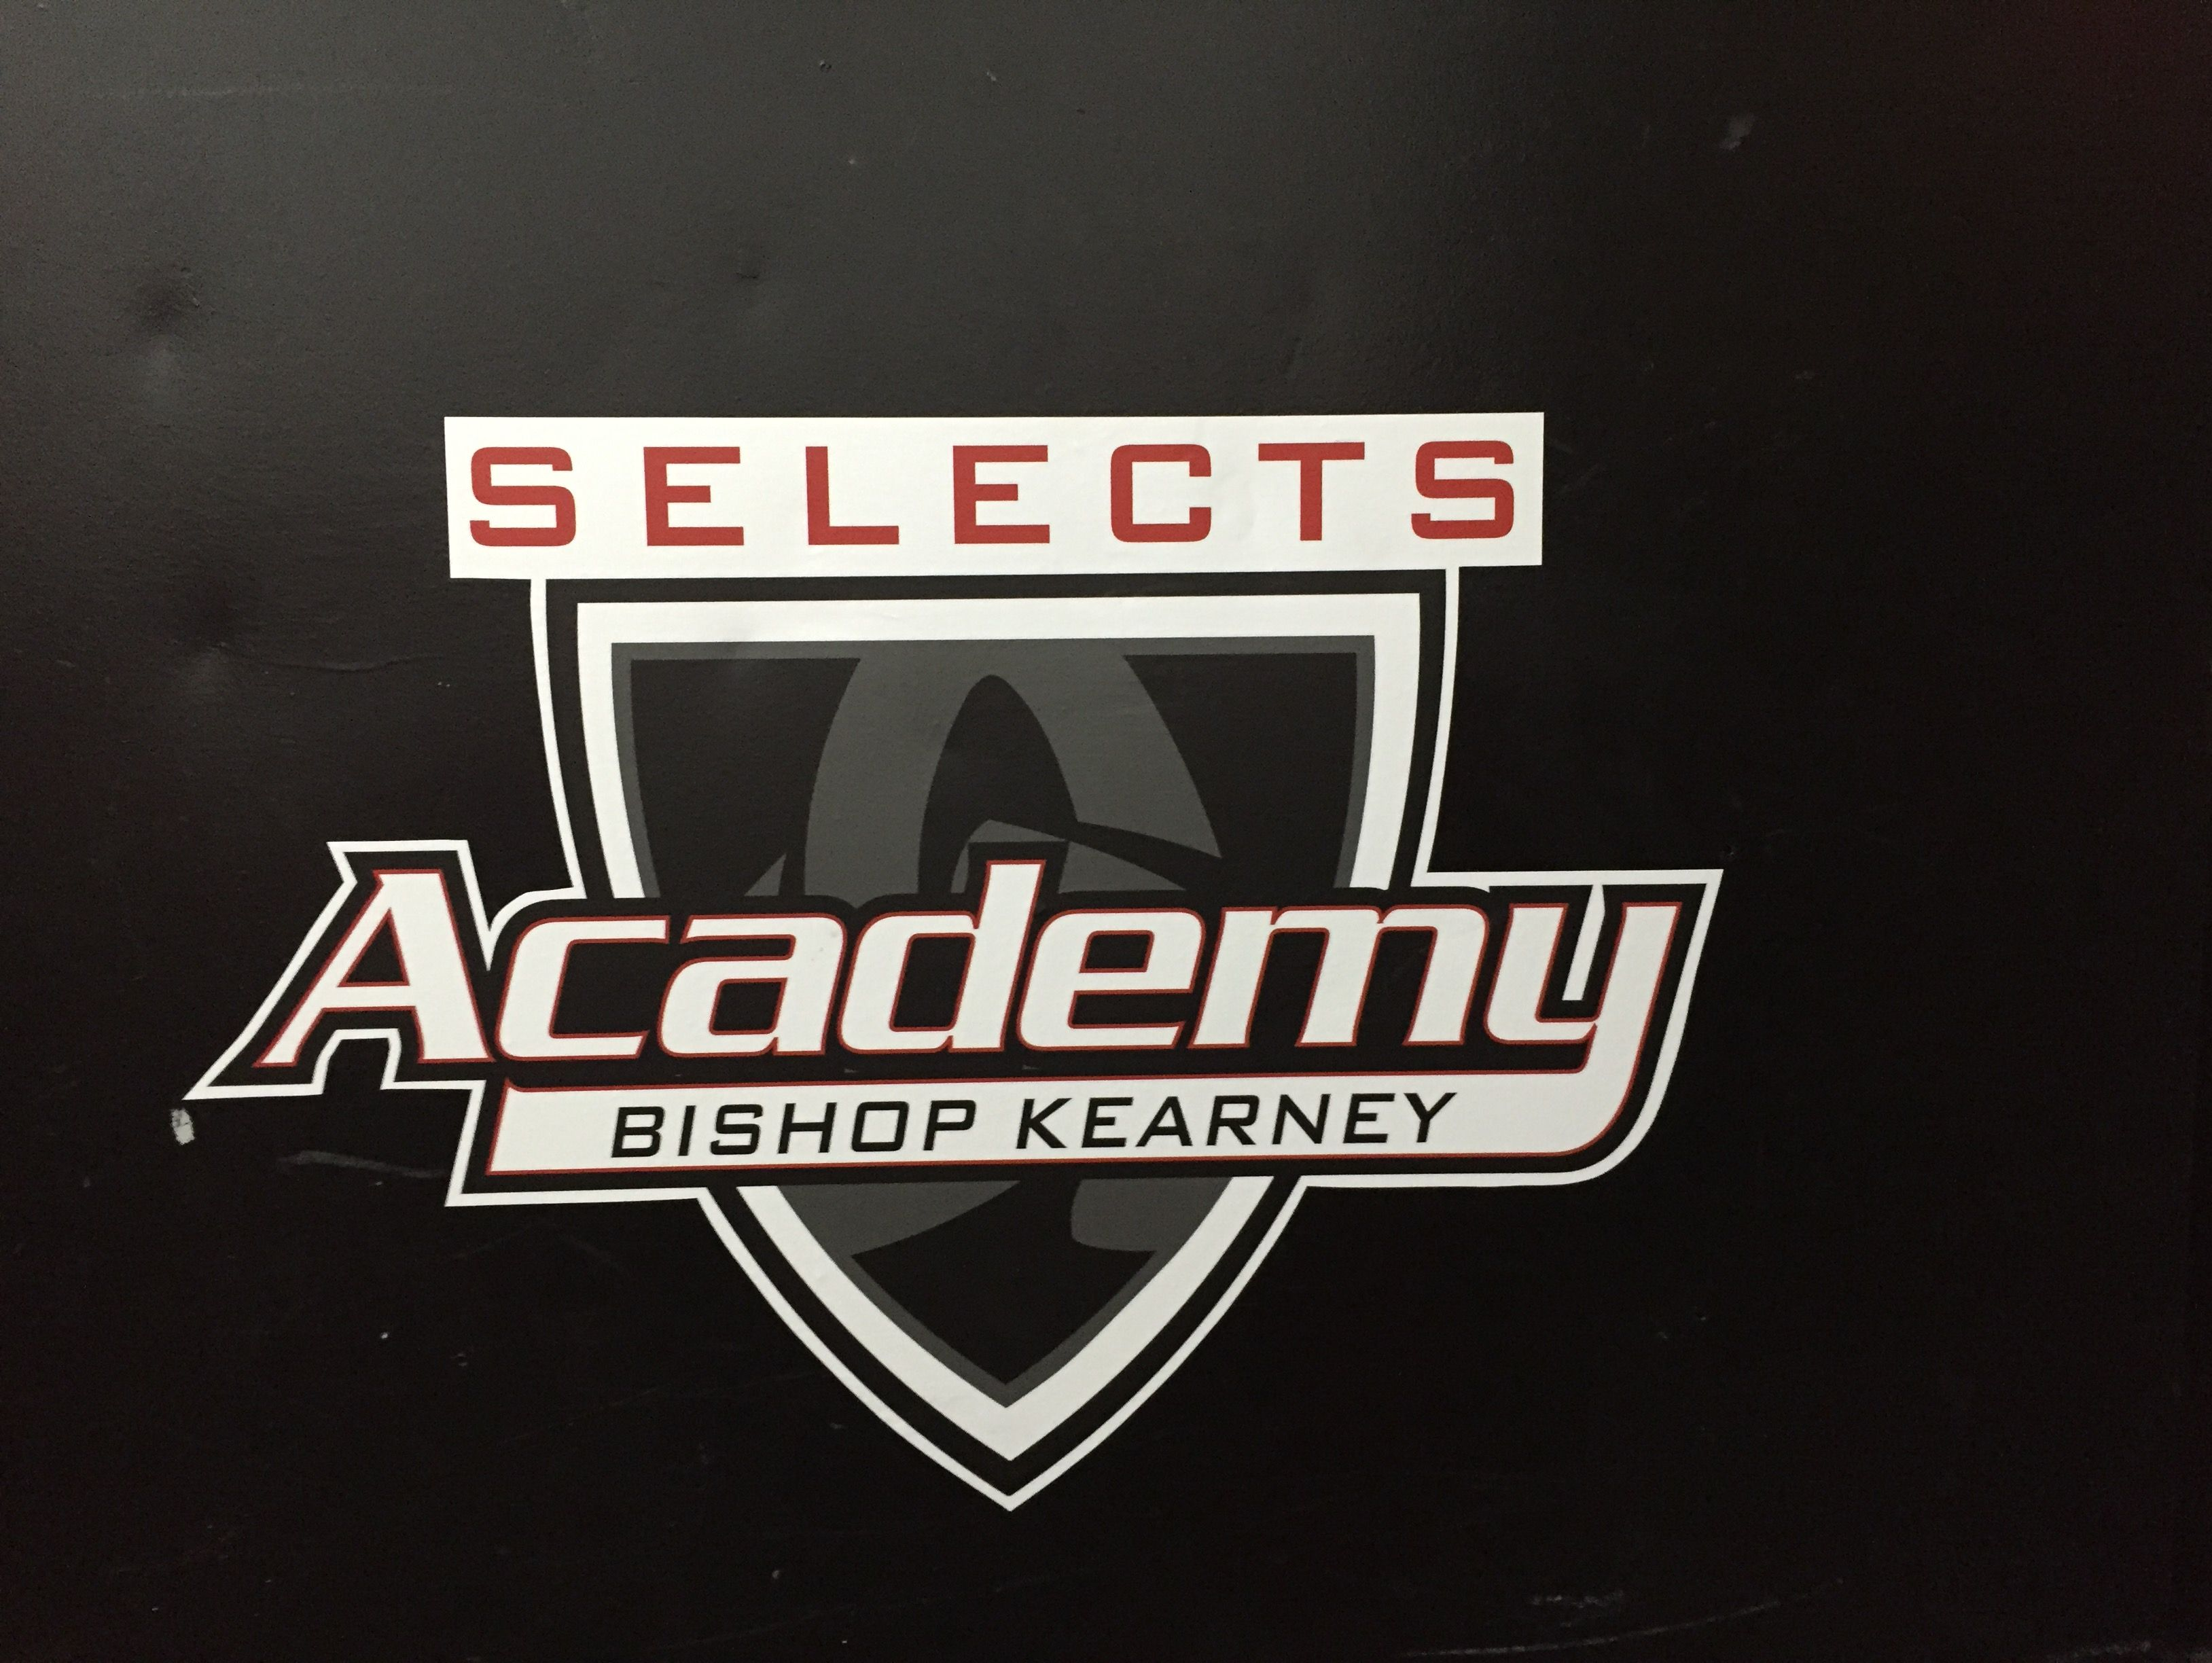 Kearney's school colors are blue, white and black, but the hockey team uses the logo and colors of Global Legacy Sports' Selects Academy for the girls hockey team, as shown on the locker room door at Bill Gray's Regional Iceplex.